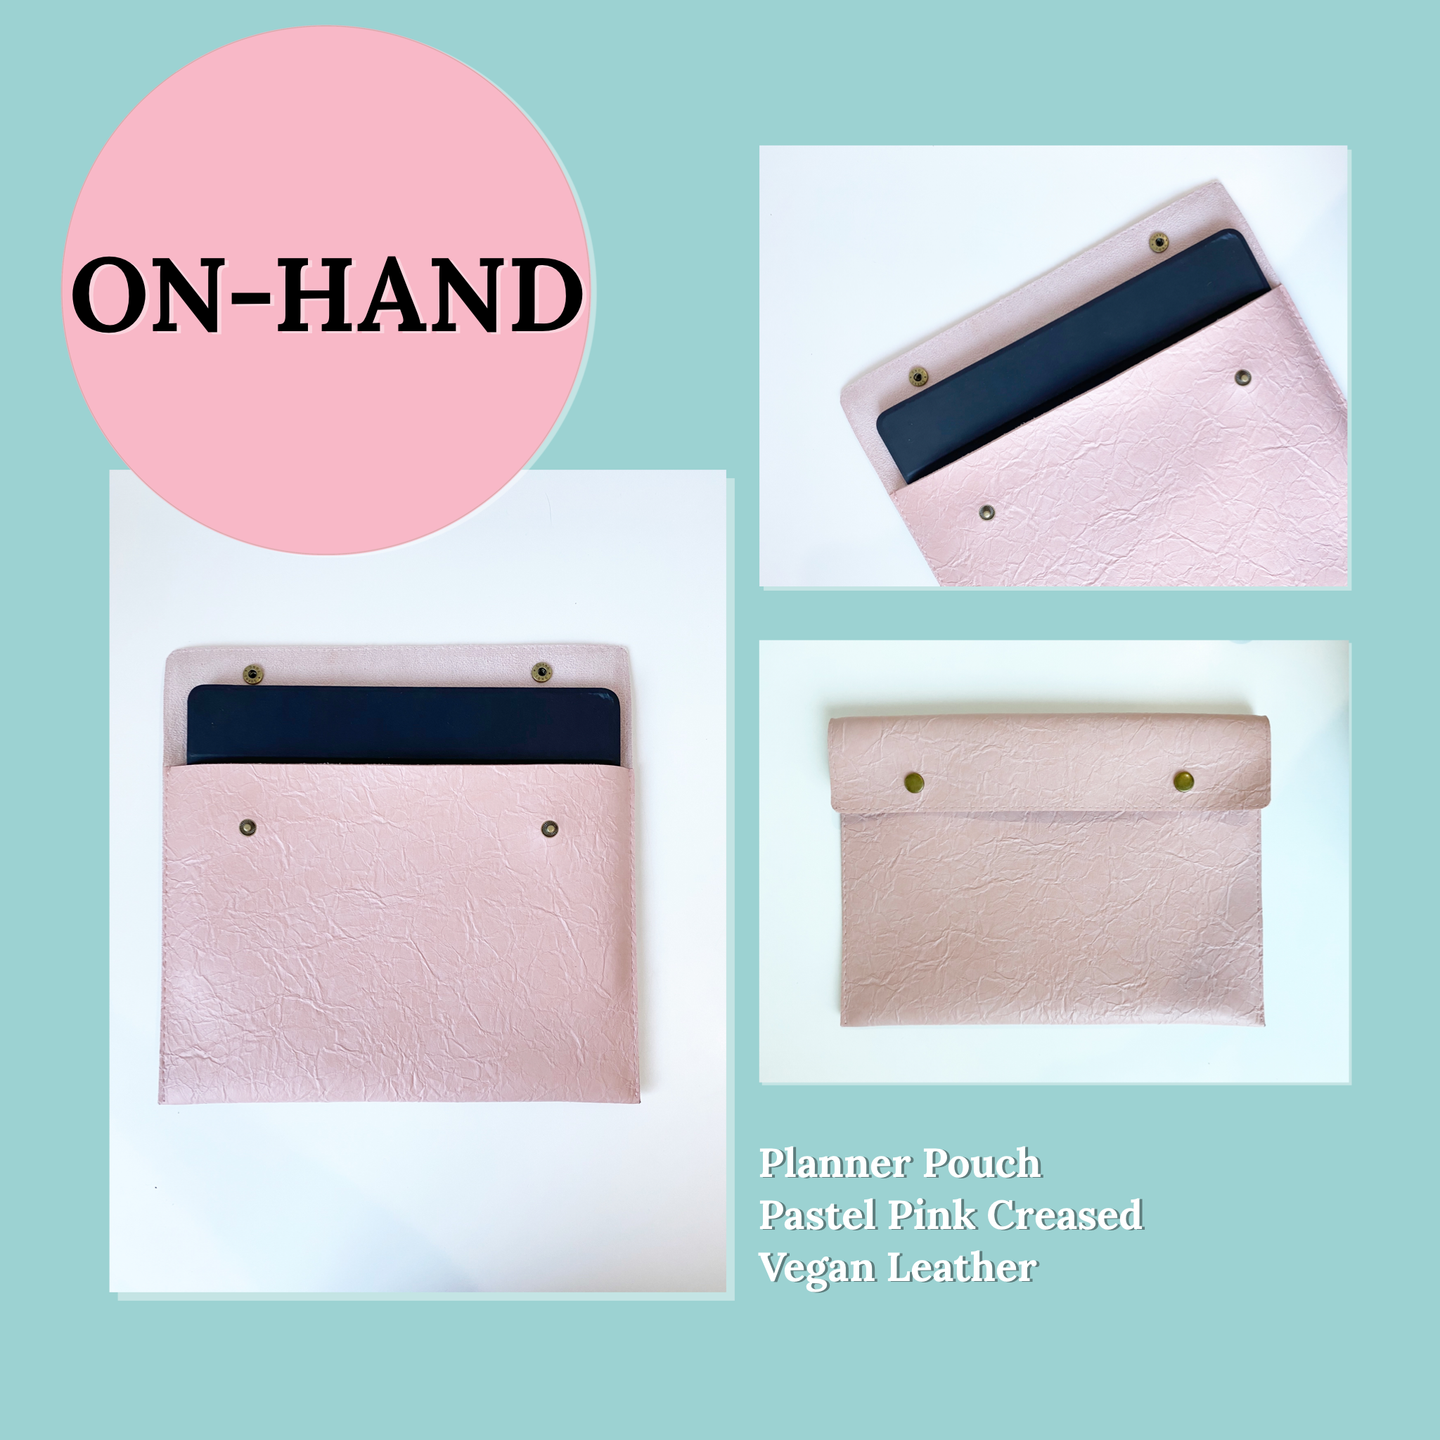 Planner Pouch in Pastel Pink